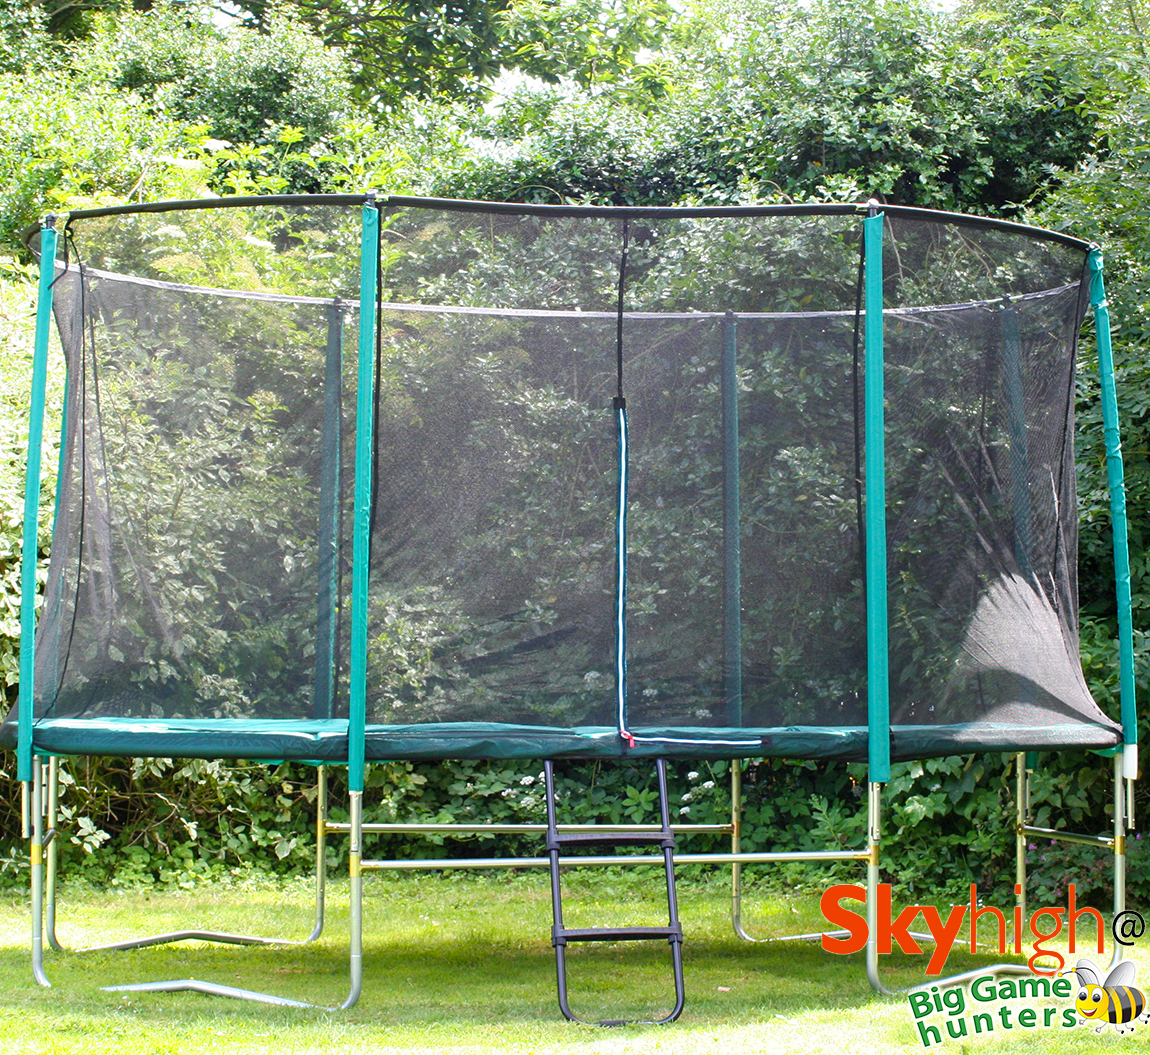 8ft X 14ft Skyhigh Oval Trampoline Package